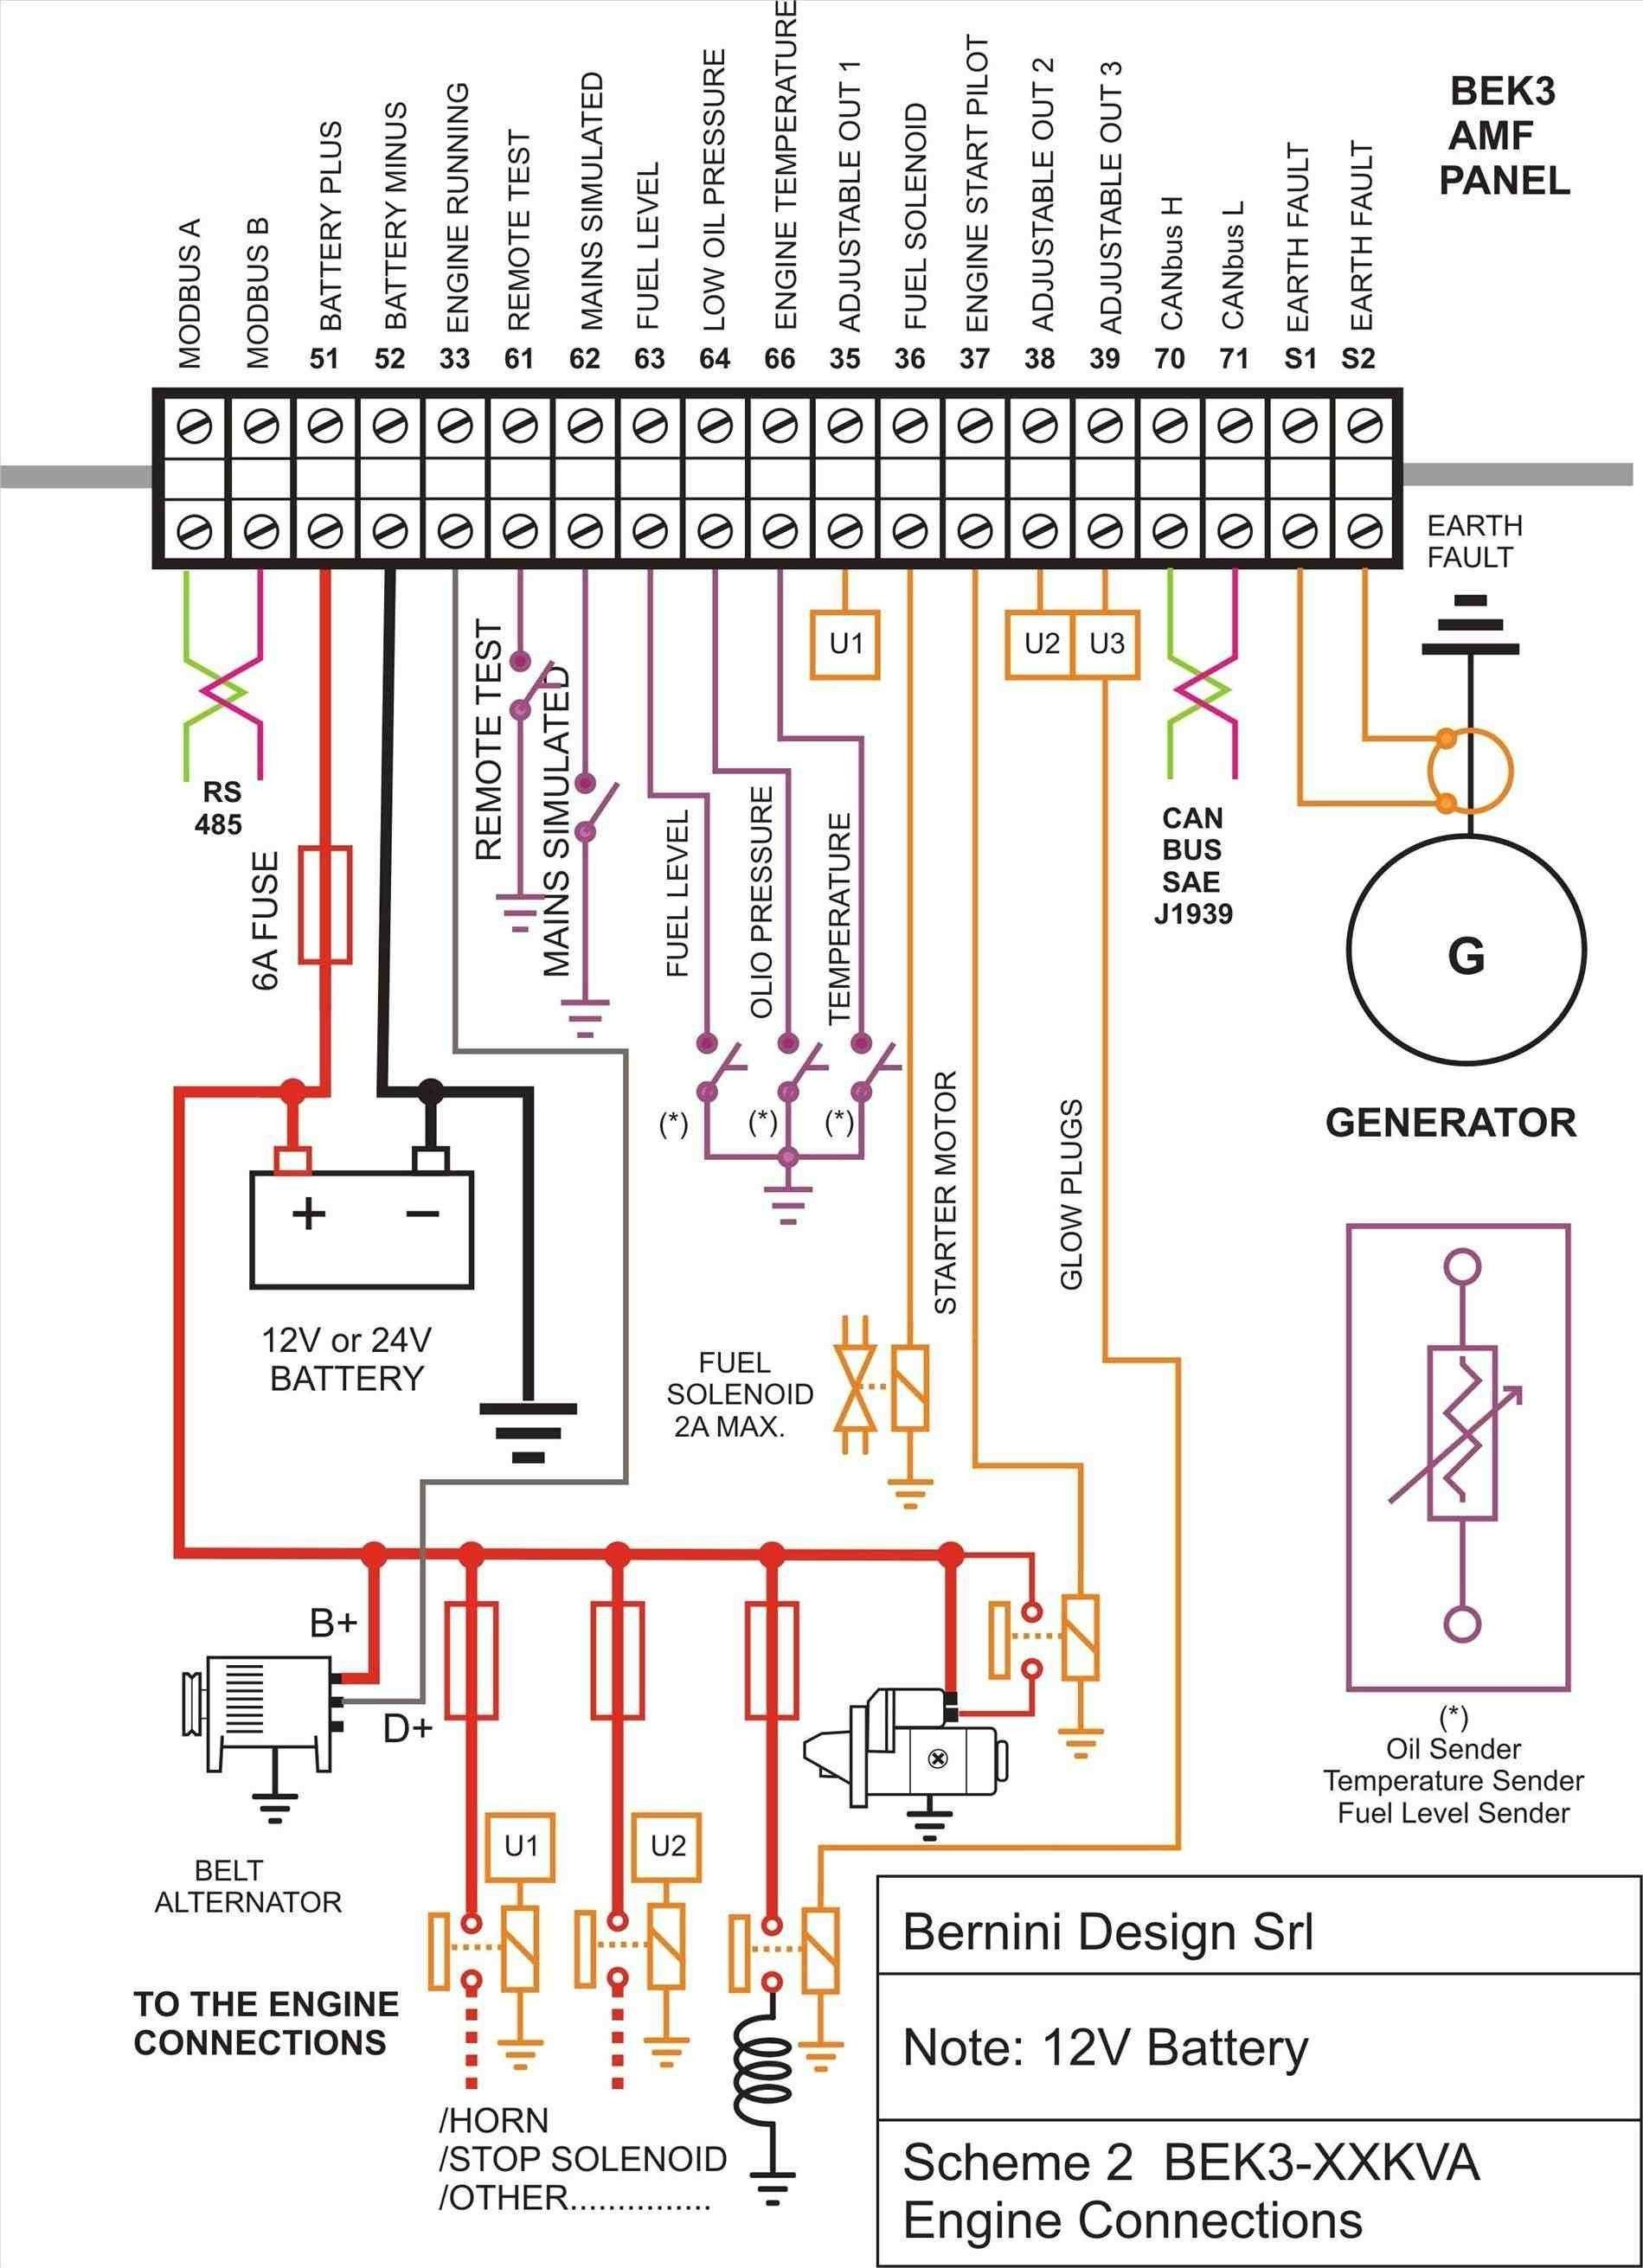 adt wiring diagram wiring diagram technic mix adt wiring diagram [ 1899 x 2622 Pixel ]